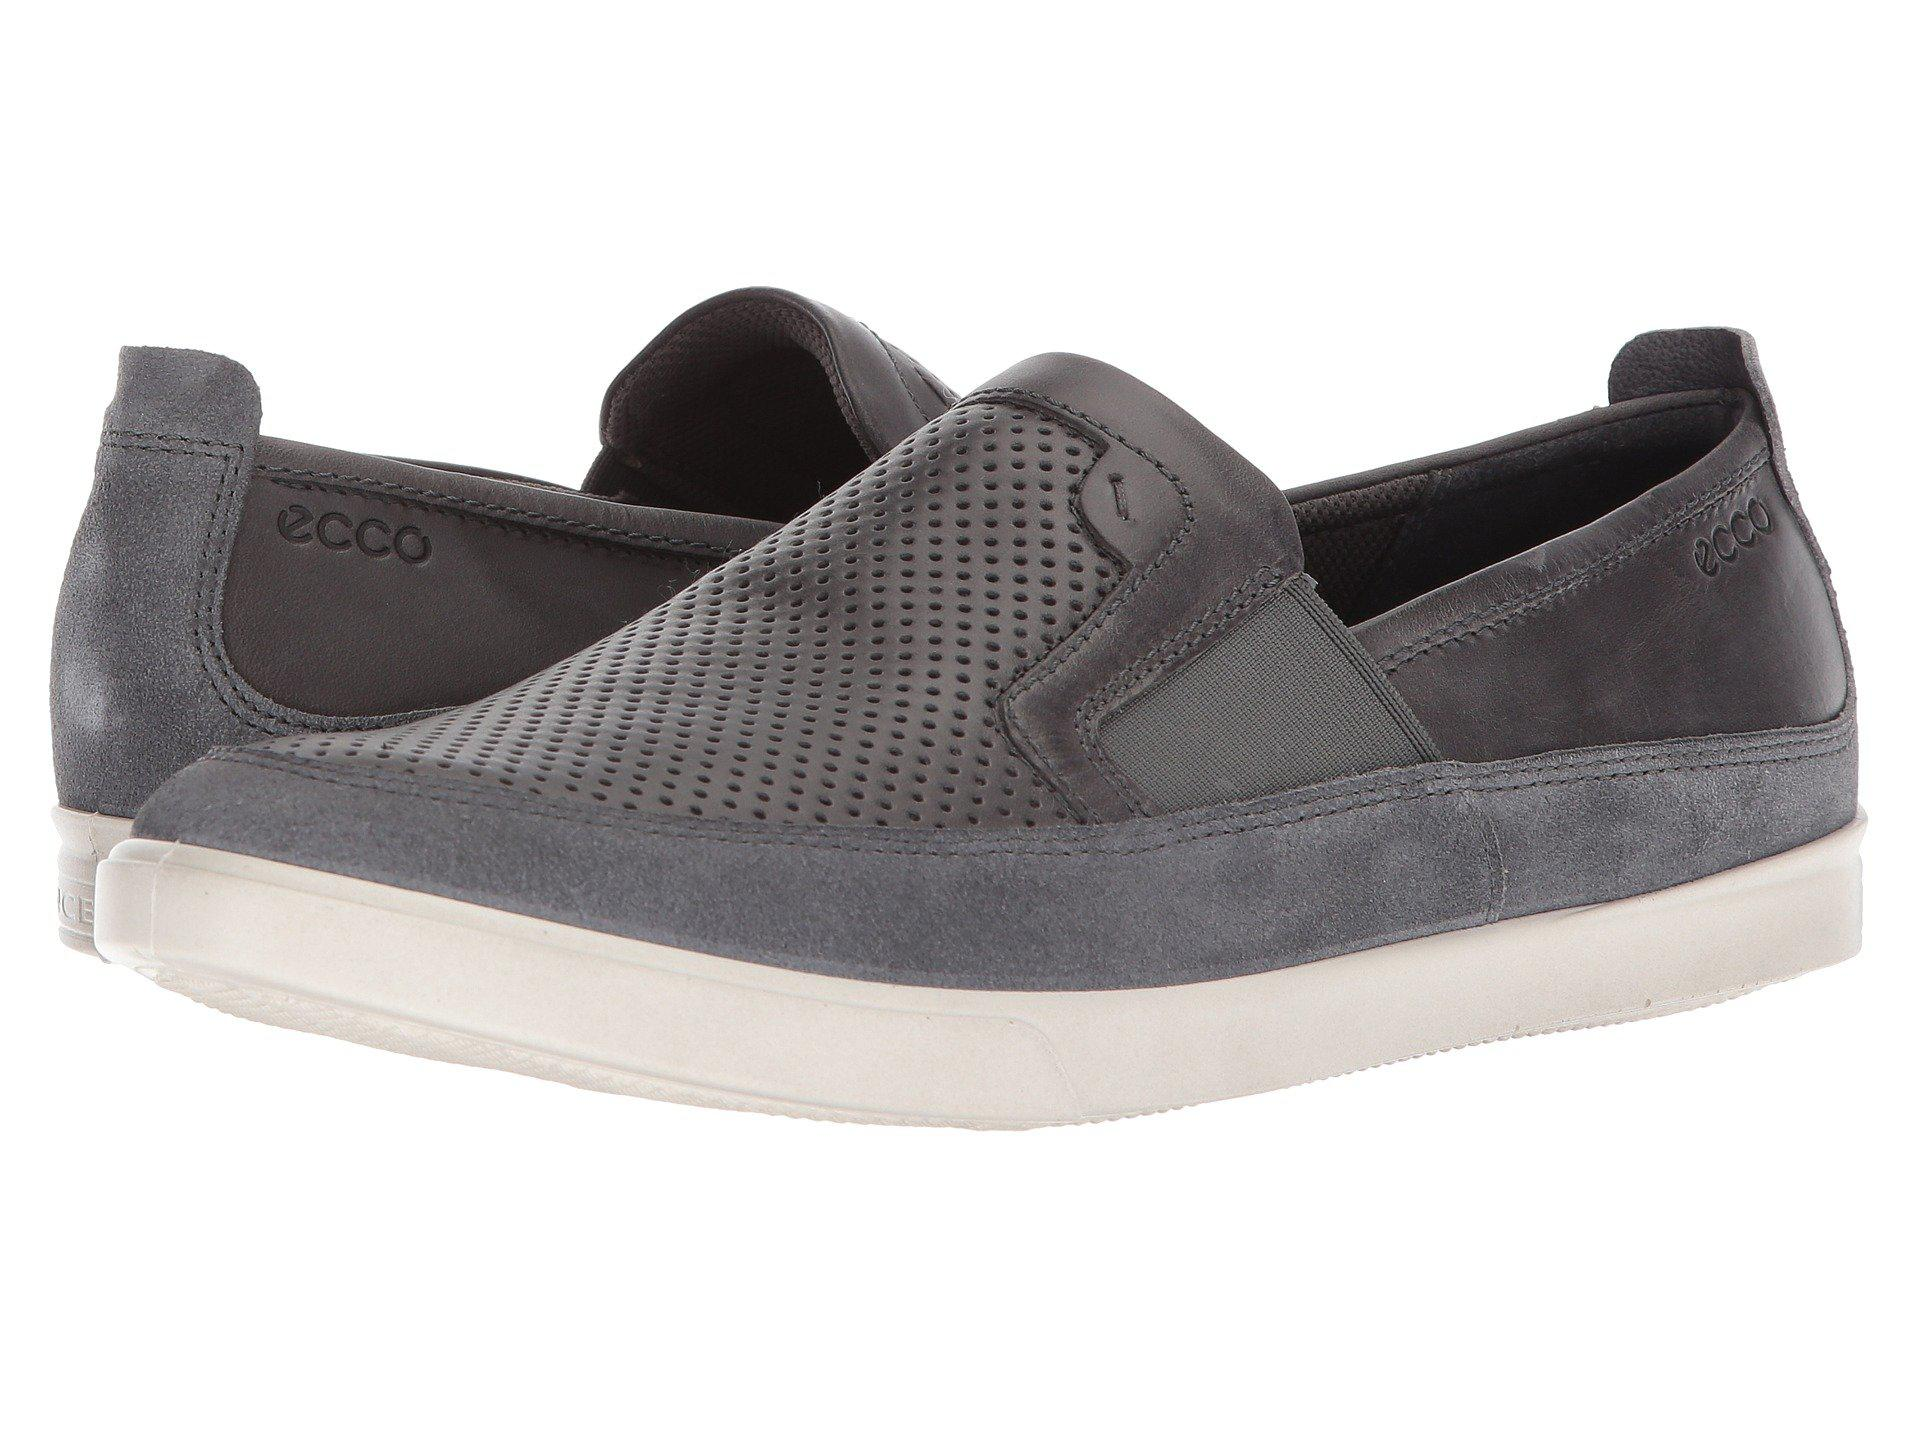 Ecco Leather Collin Micro Perf Slip On Moonless Moonless